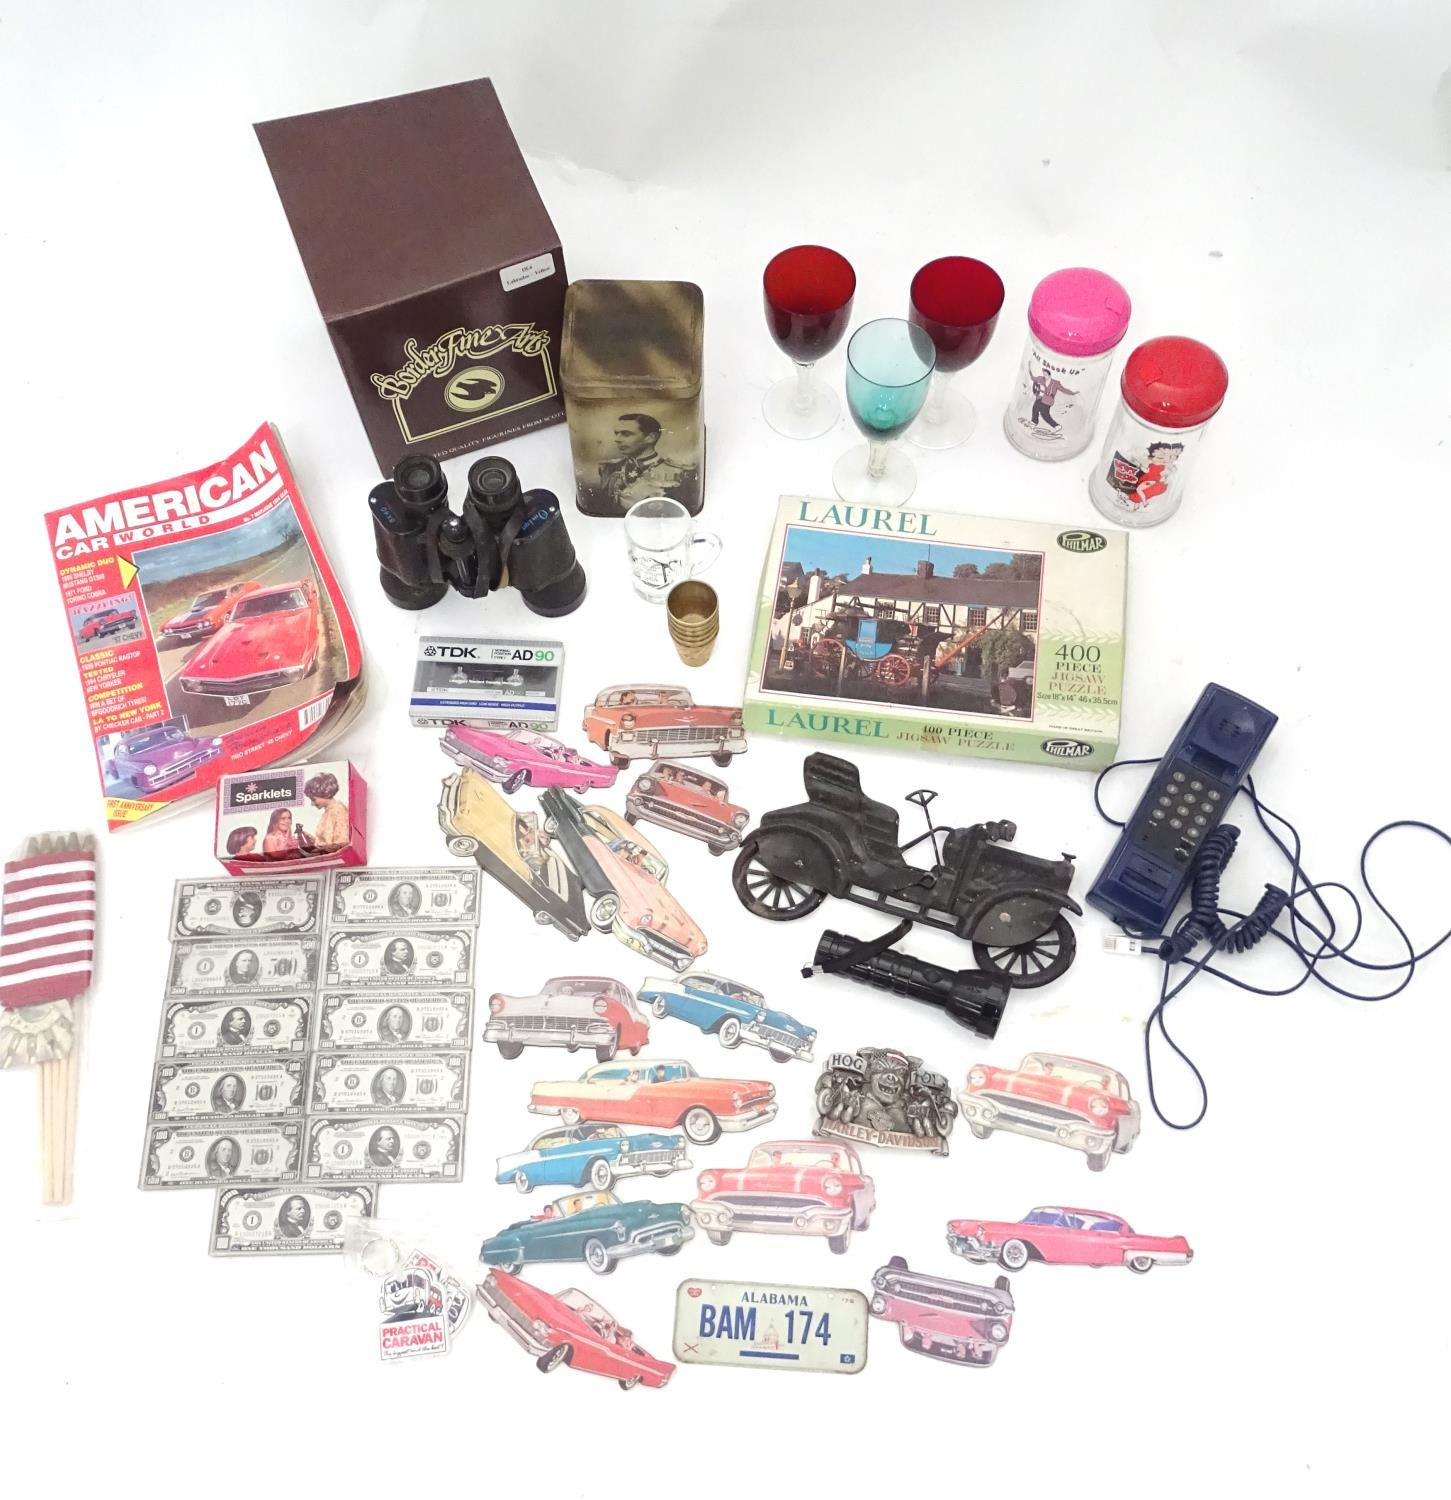 A box of miscellaneous to include novelty phone, drinking glasses, wine glasses, binoculars etc.